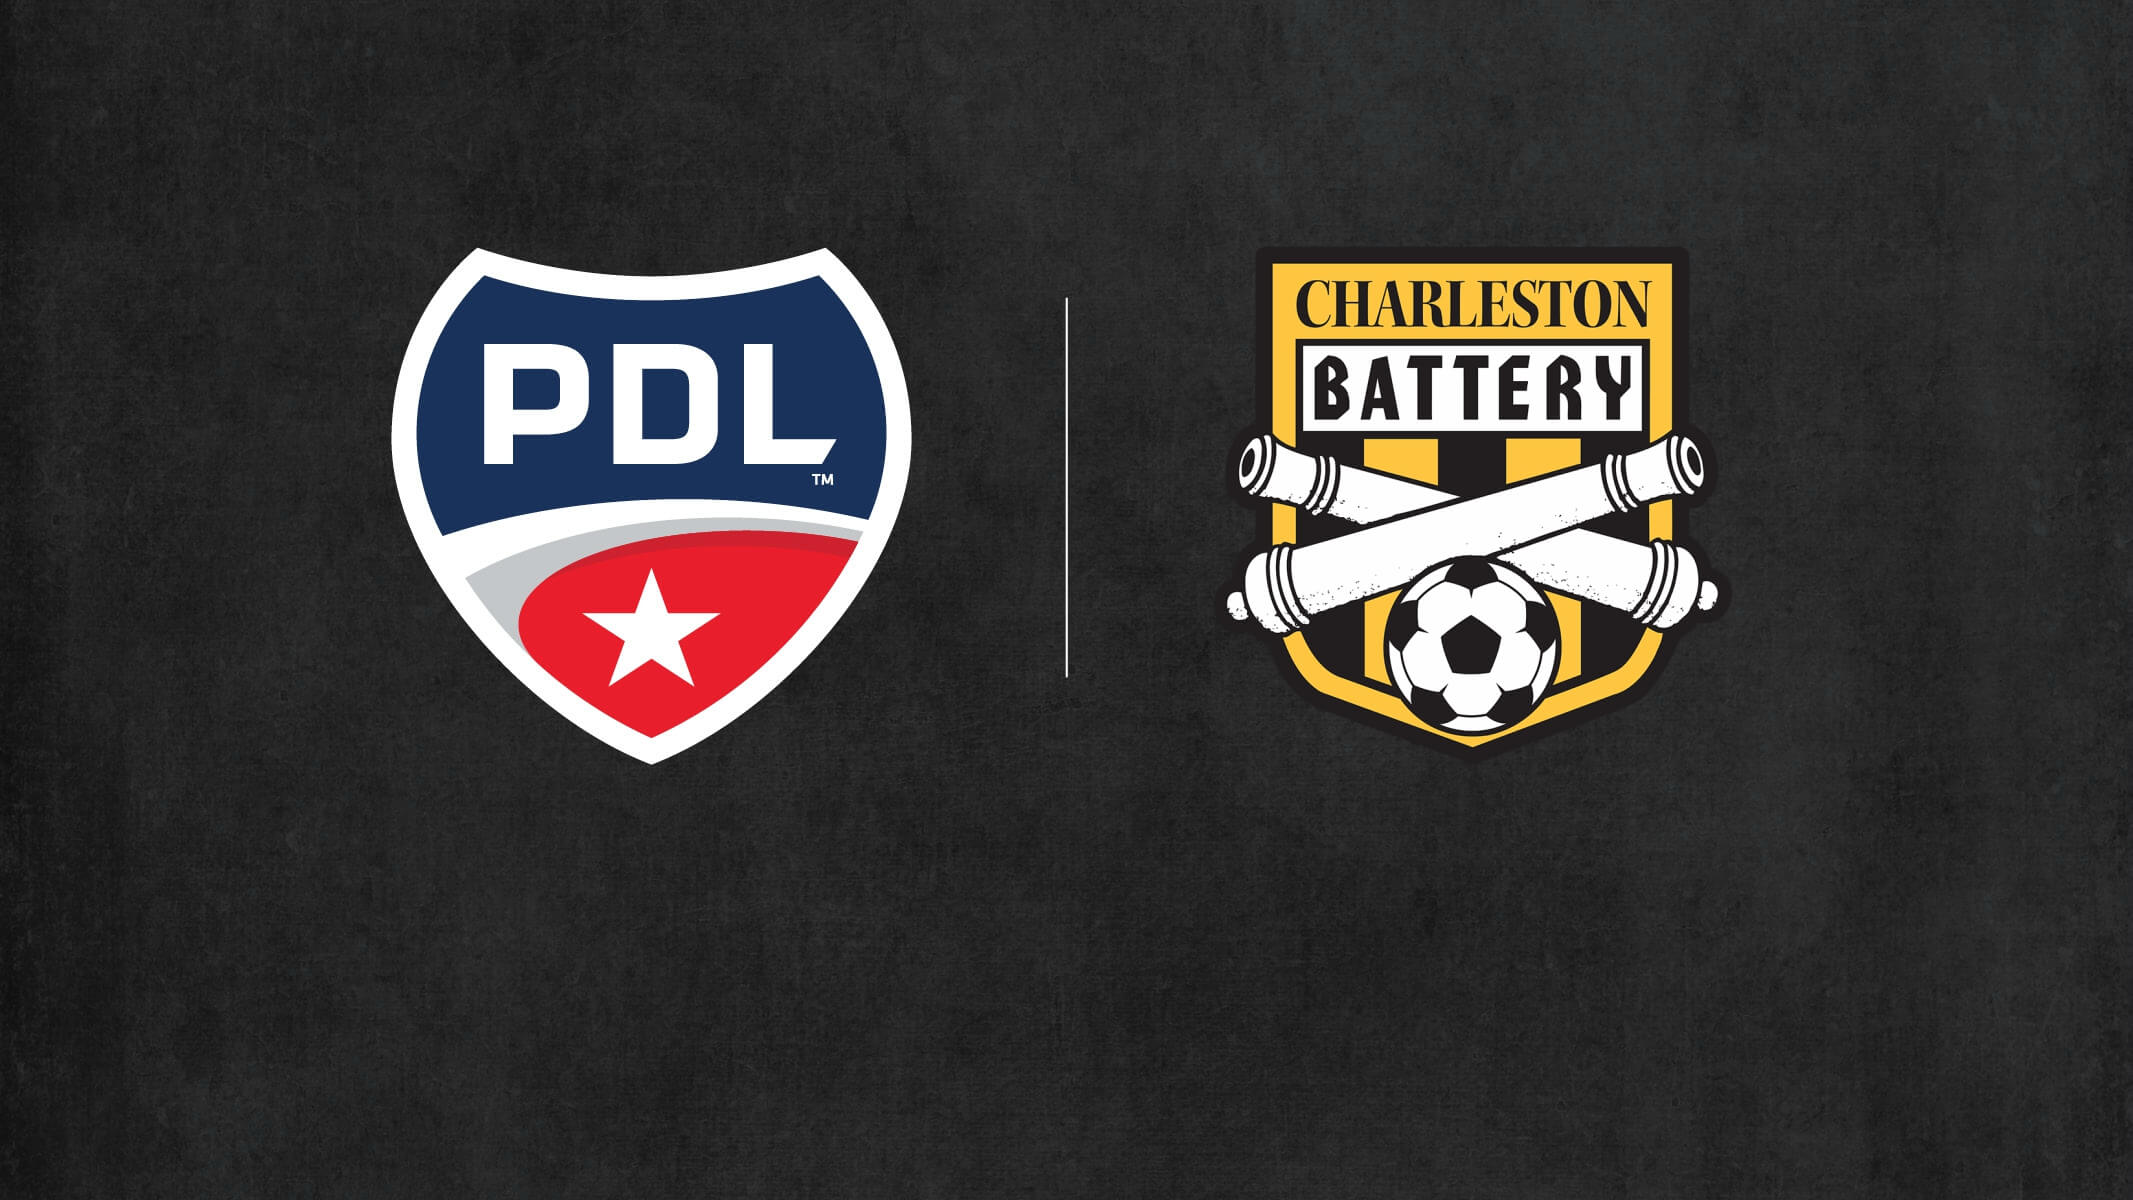 Usls battery reveals affiliation with three pdl franchises the charleston battery who compete in the division 2 united soccer league unveiled affiliations with three premier development league franchises for the biocorpaavc Gallery